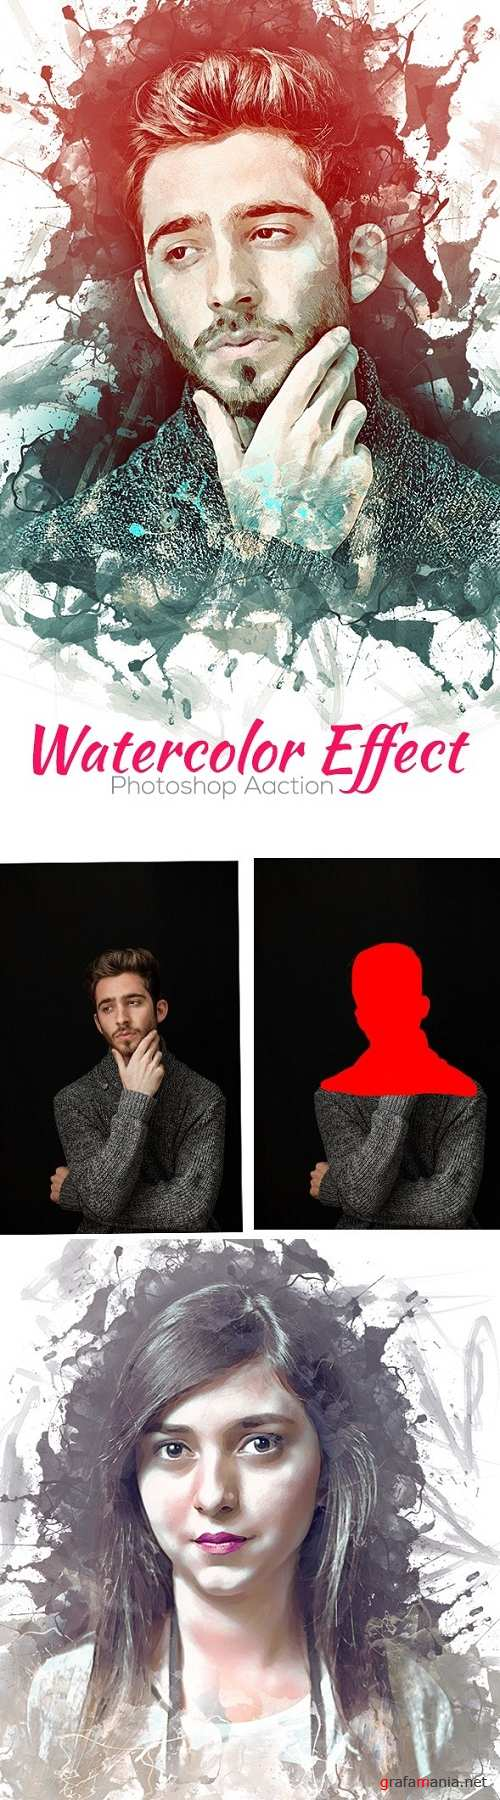 Watercolor Effect Photoshop Action 24740269